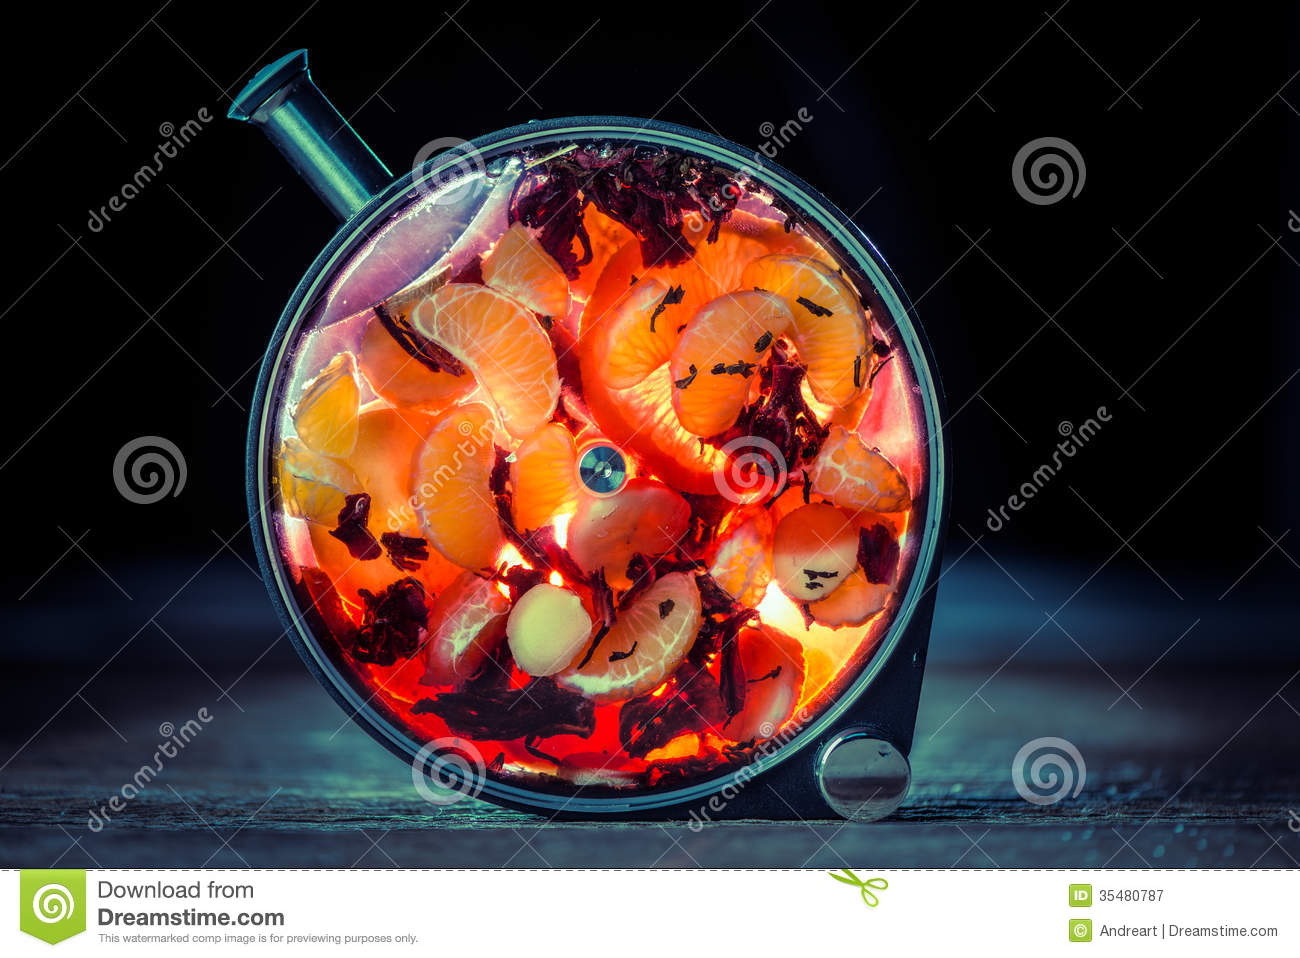 Porthole infusion bottle with alcohol infused with fruits.